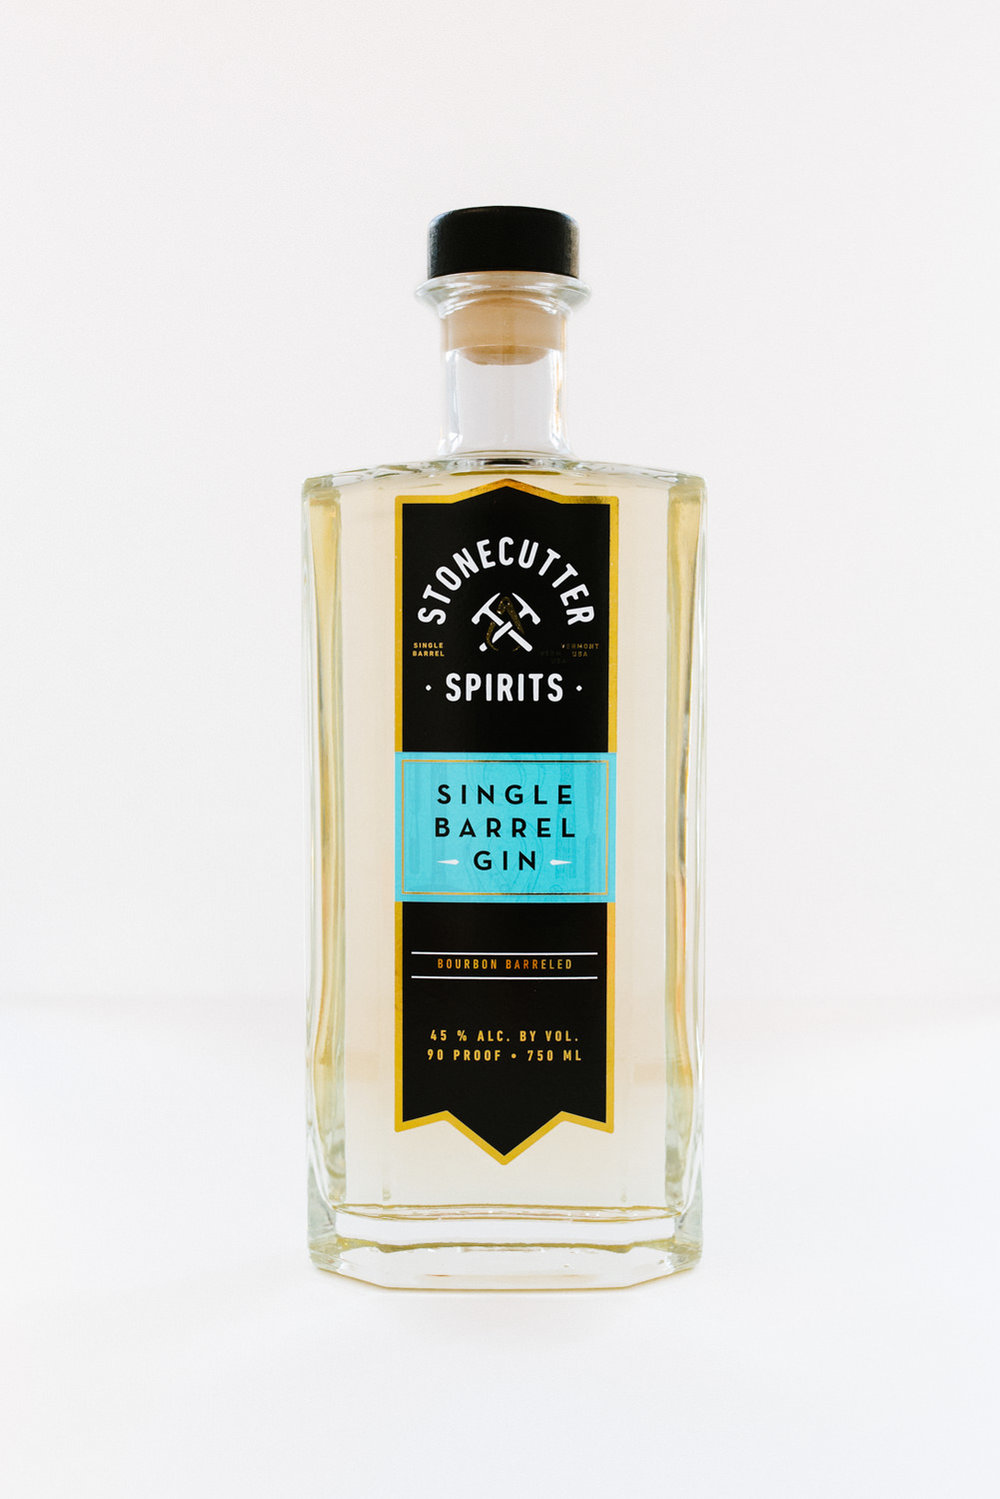 commercial-editorial-brand-photographer-vermont-41©-Elisabeth-Waller-gin-stonecutter-spirits-bottle.jpg